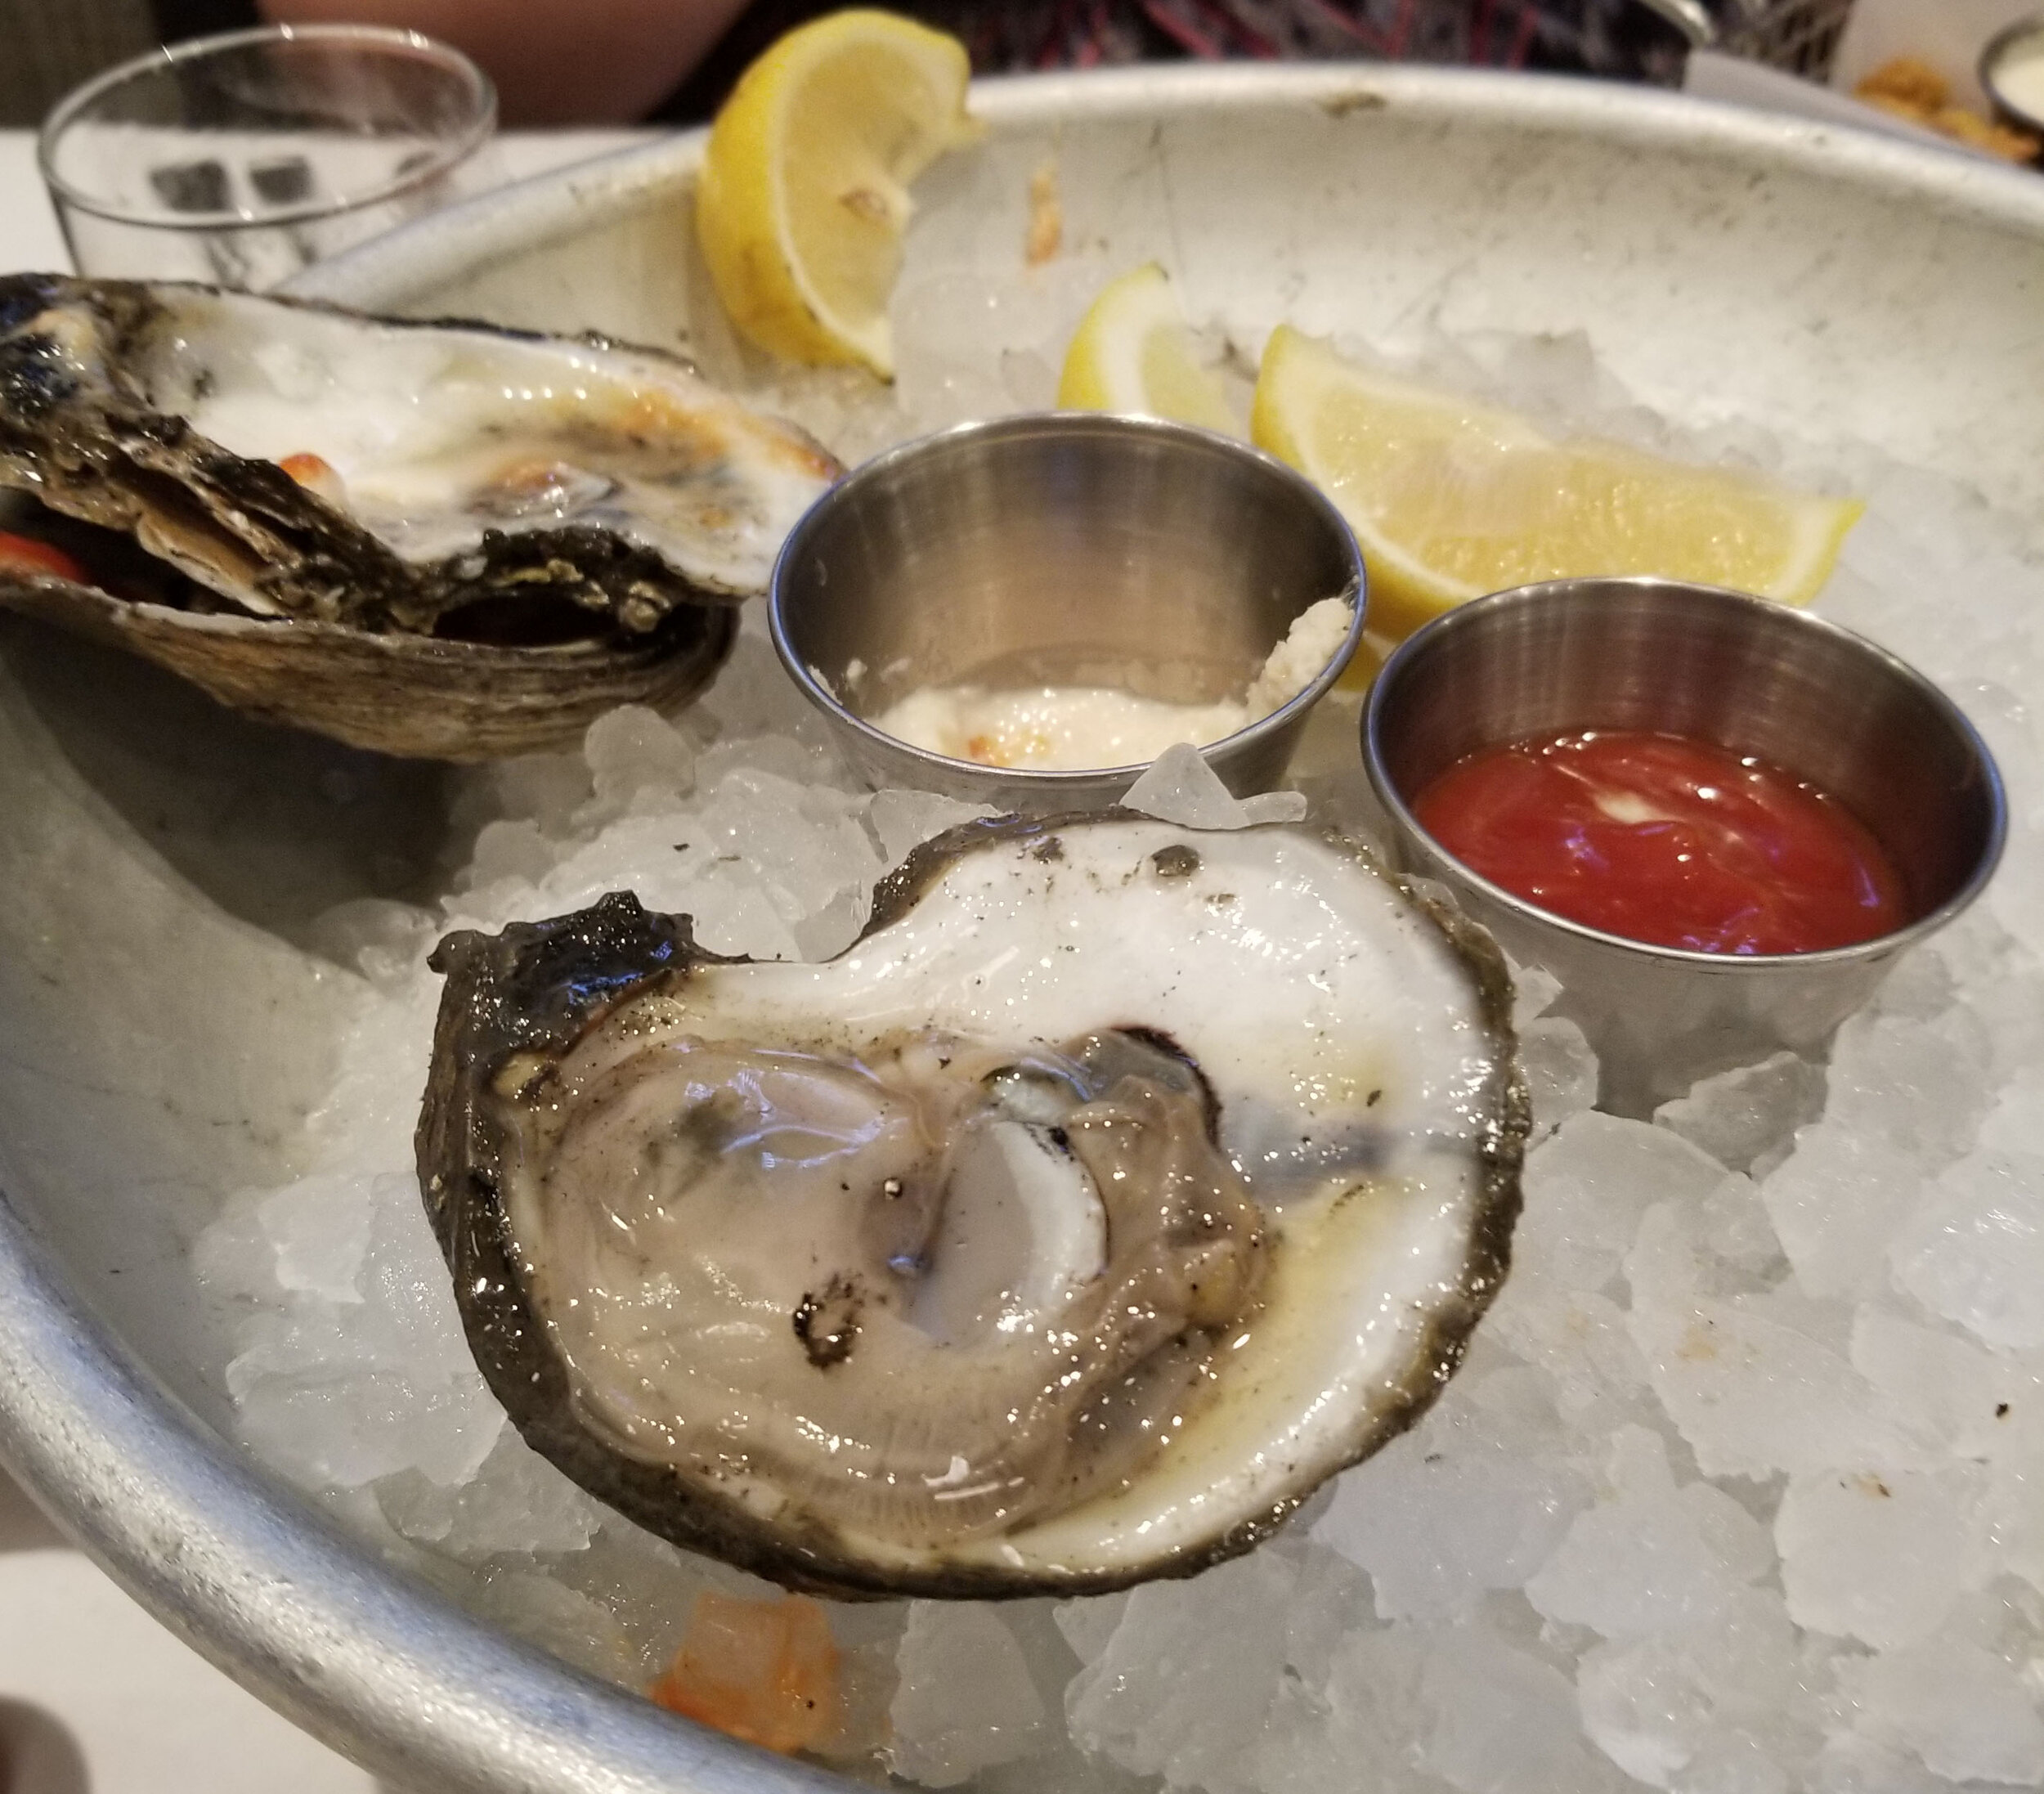 4 Days in New Orleans | Oyster Happy Hour at Luke | Laurel and Iron